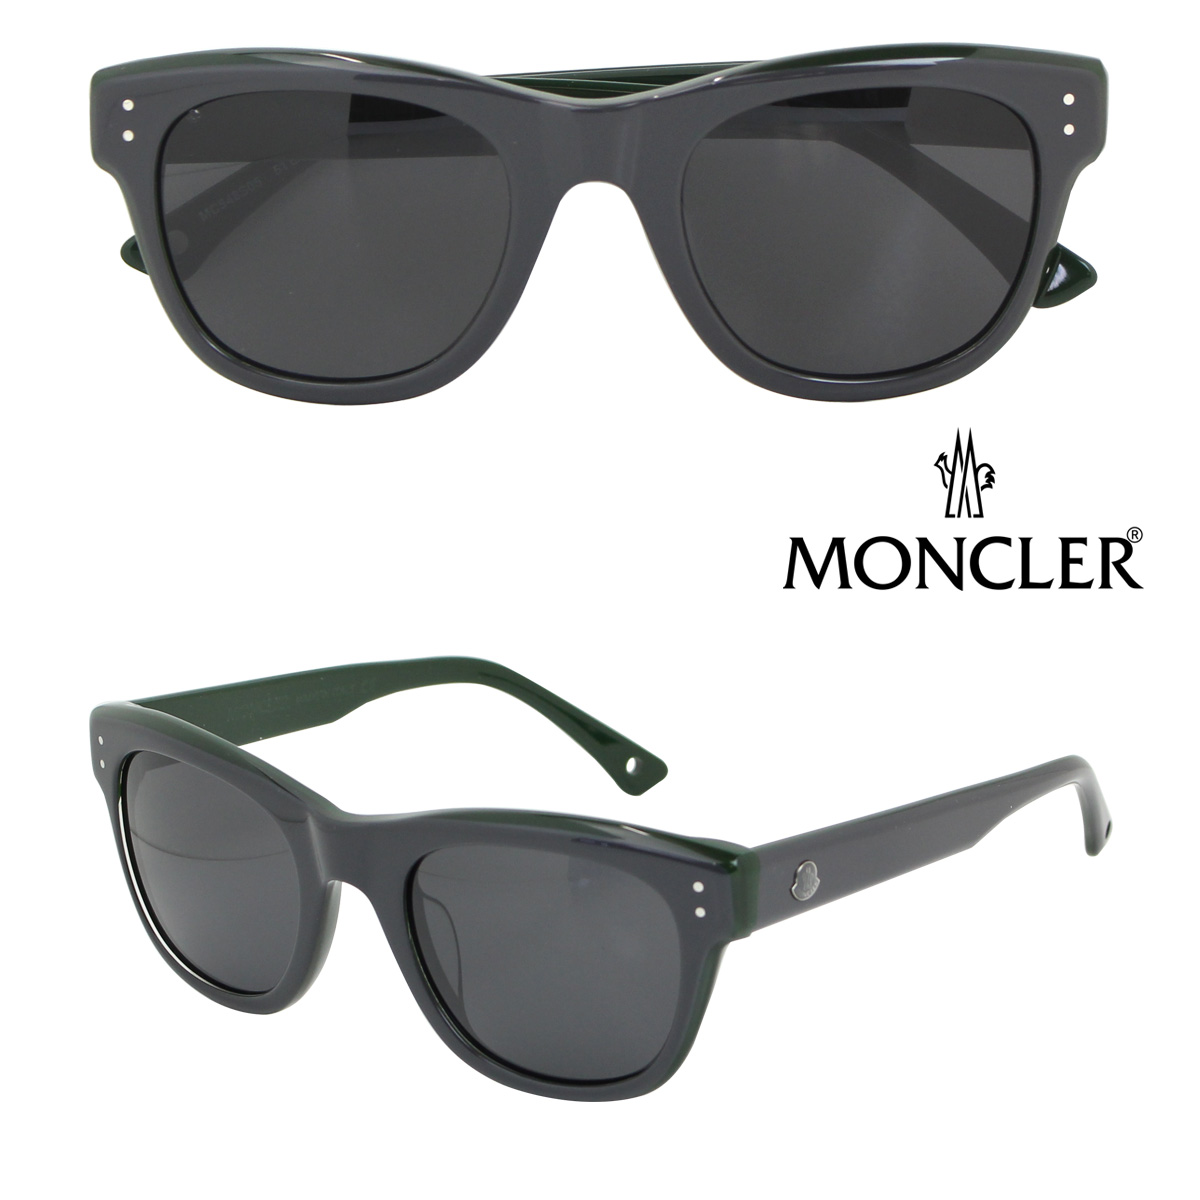 7eb140499d7 Sugar Online Shop   SOLD OUT  MONCLER MONCLER Sunglasses made in ...